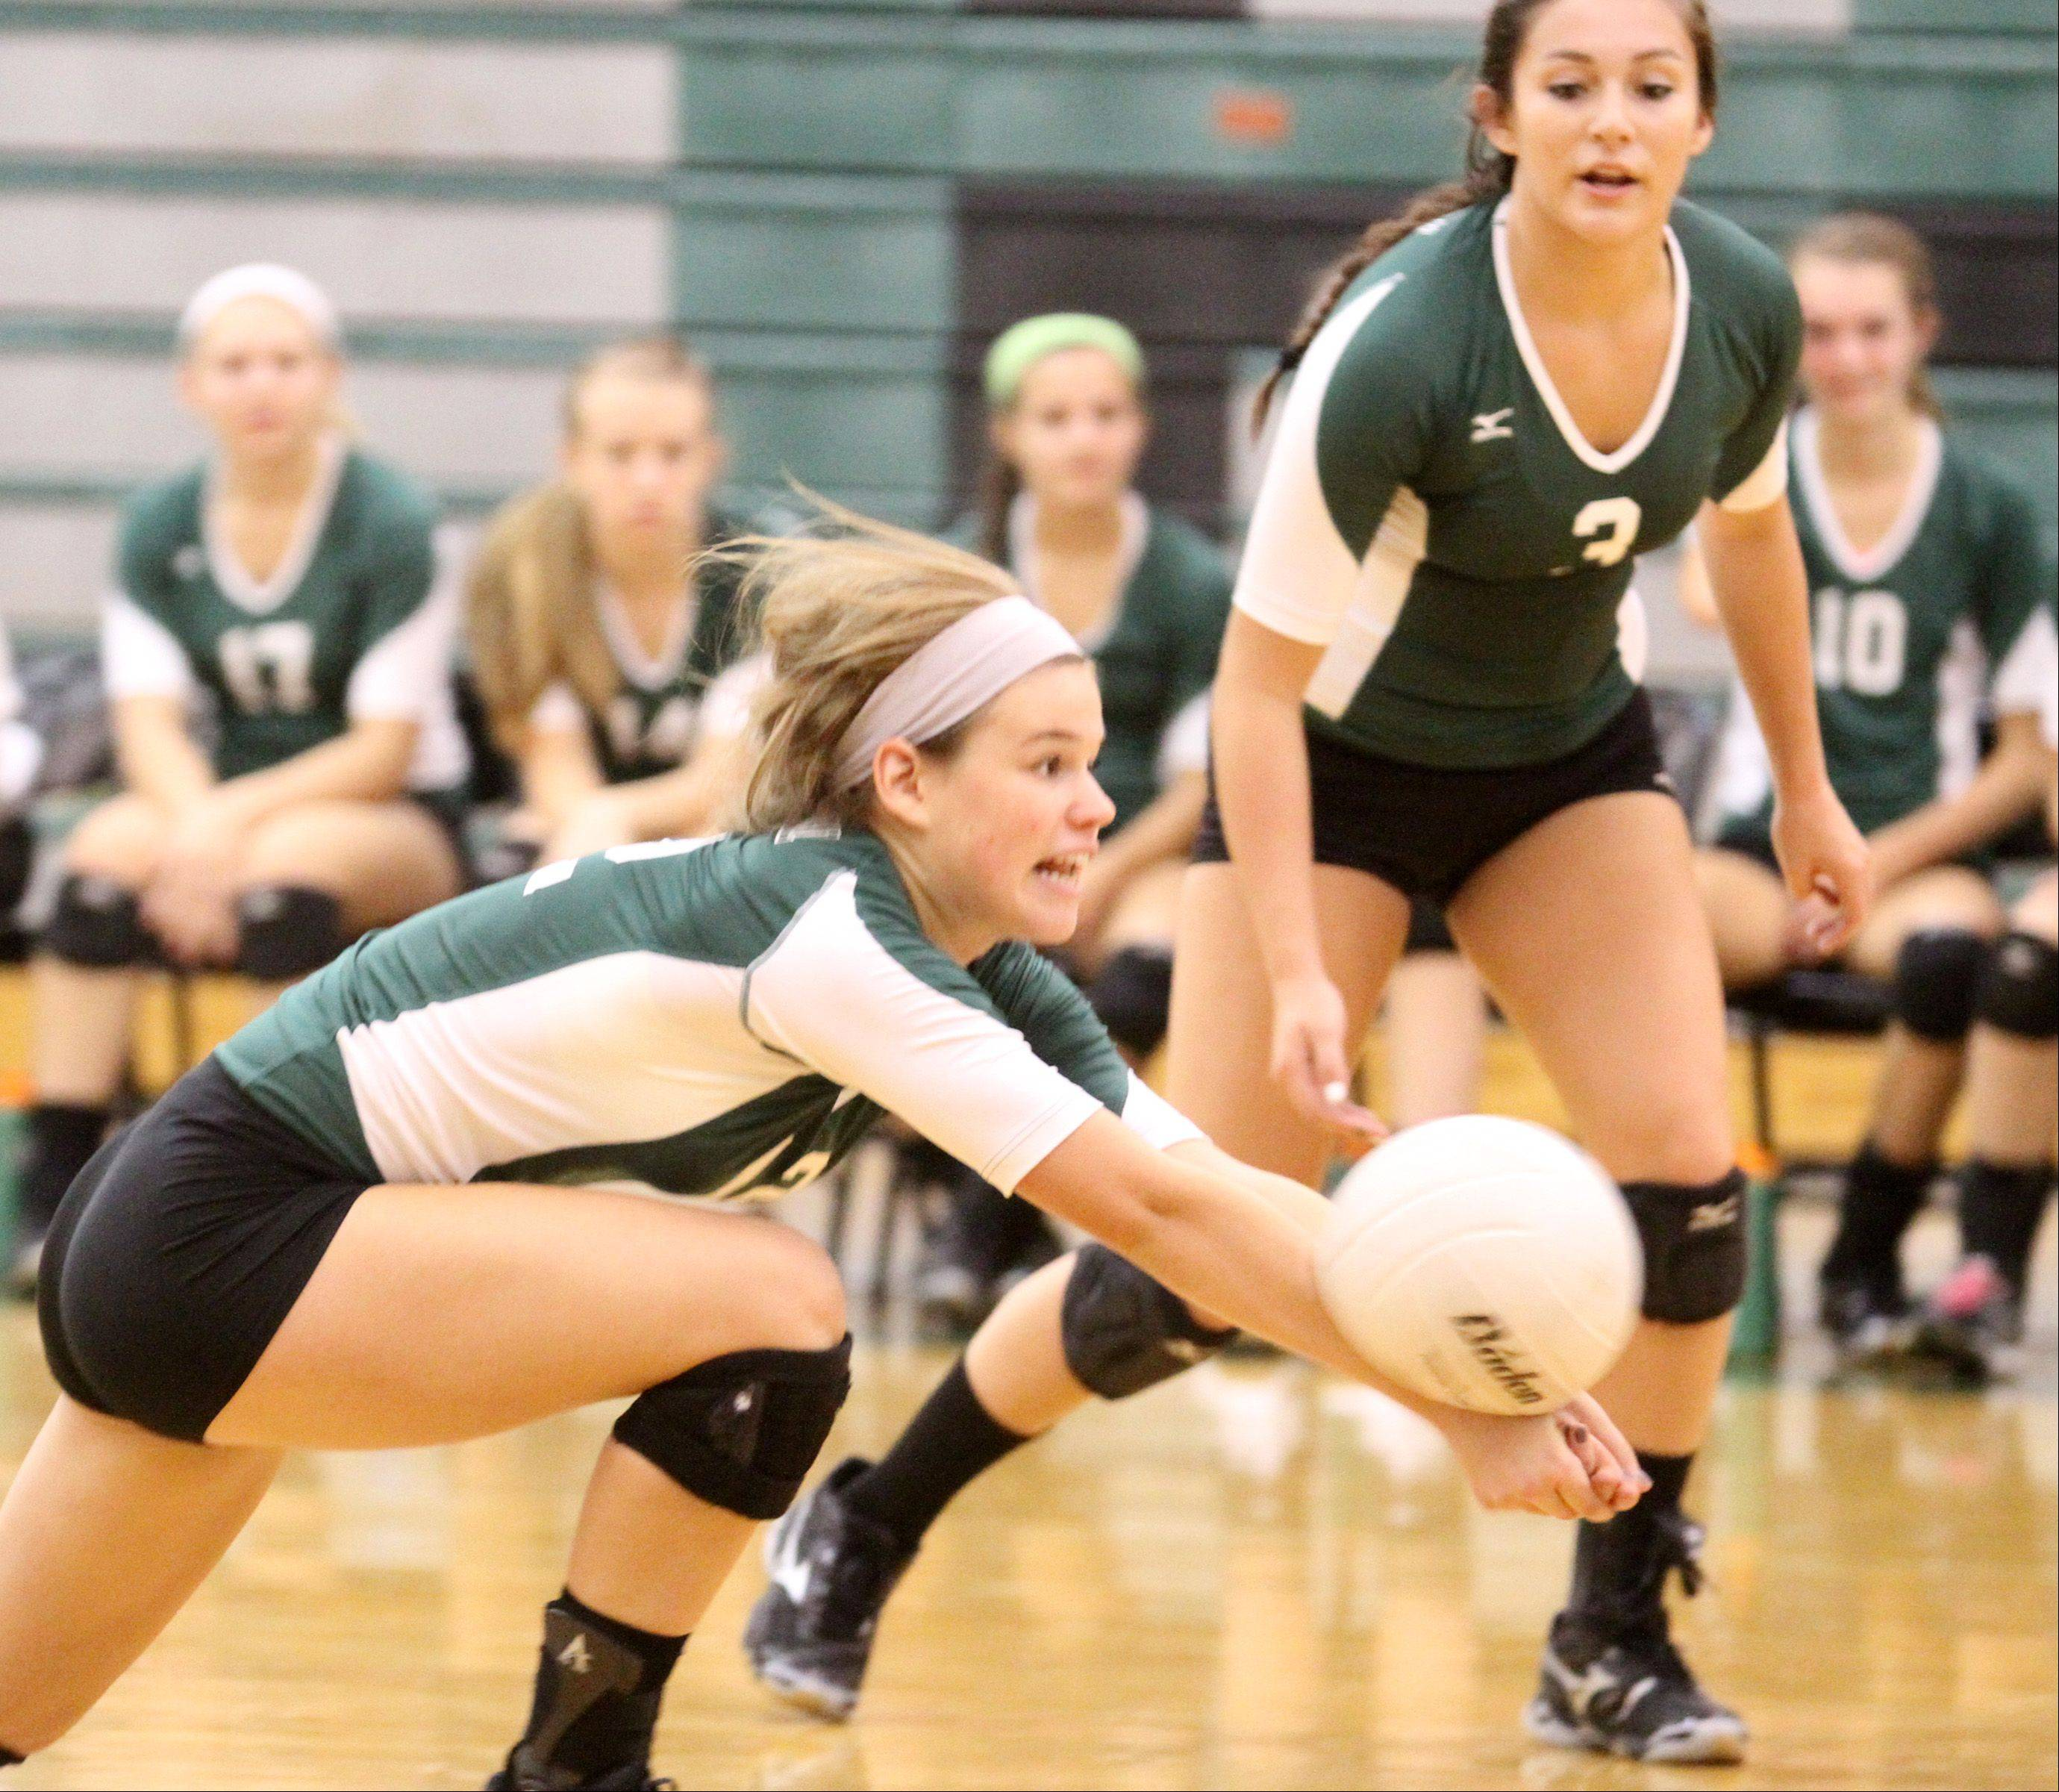 Grayslake Central's Hannah Thomas gets under a spike during Saturday's volleyball match against Richmond-Burton in Grayslake.